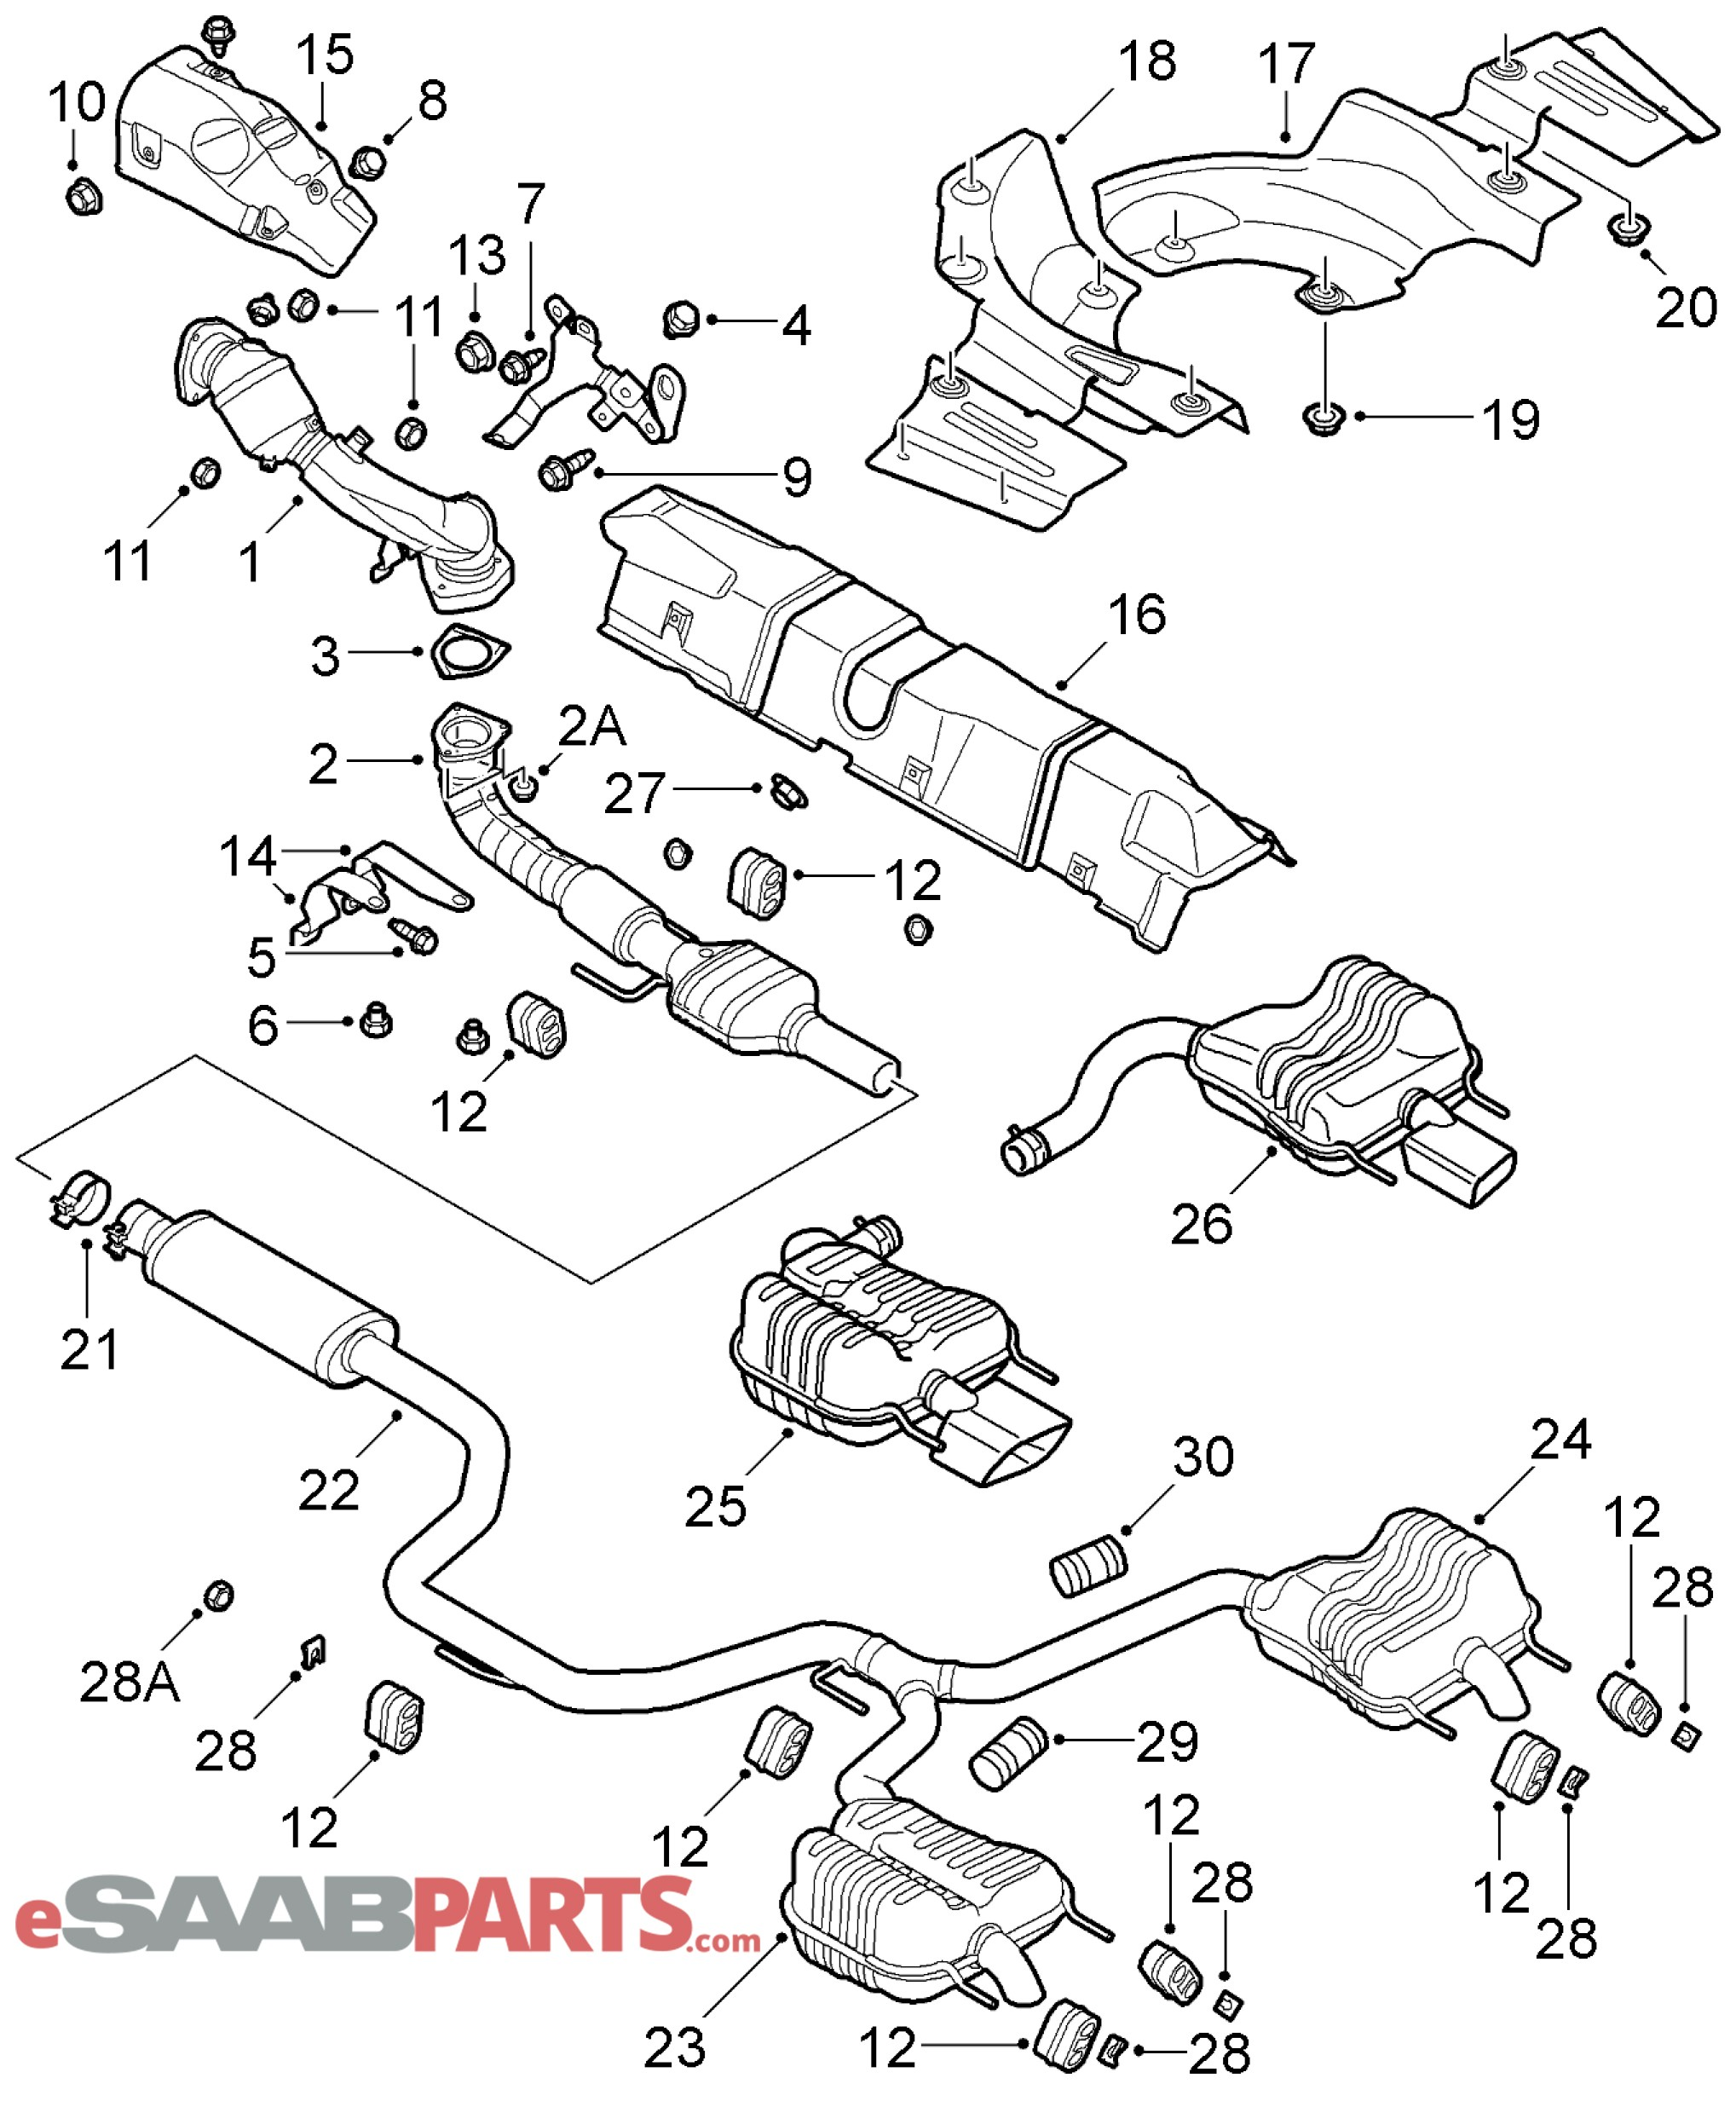 eSaabParts Saab 9 3 9440 Engine Parts Exhaust System